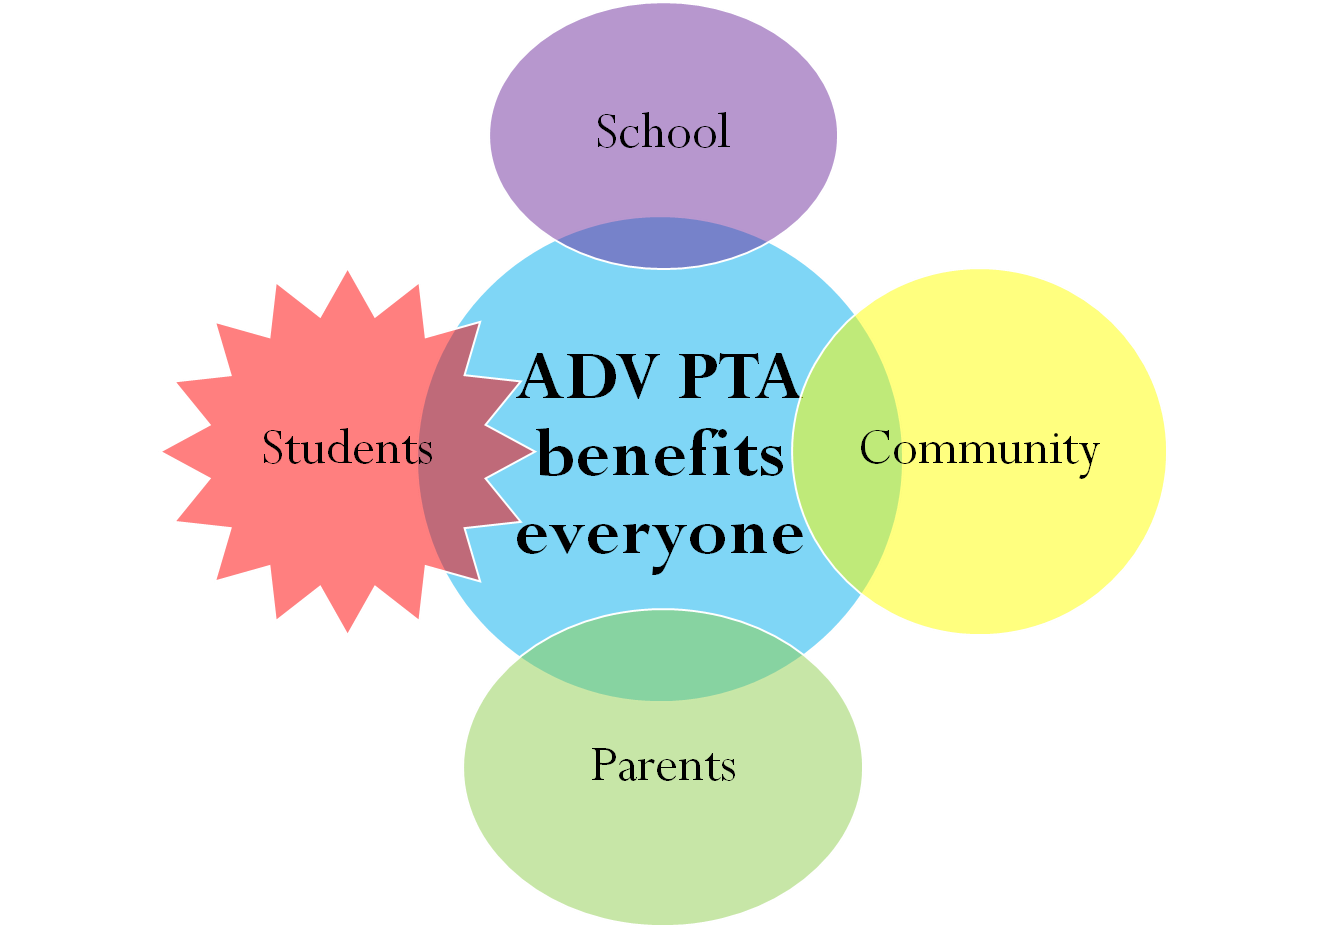 adv pta benefits everyone